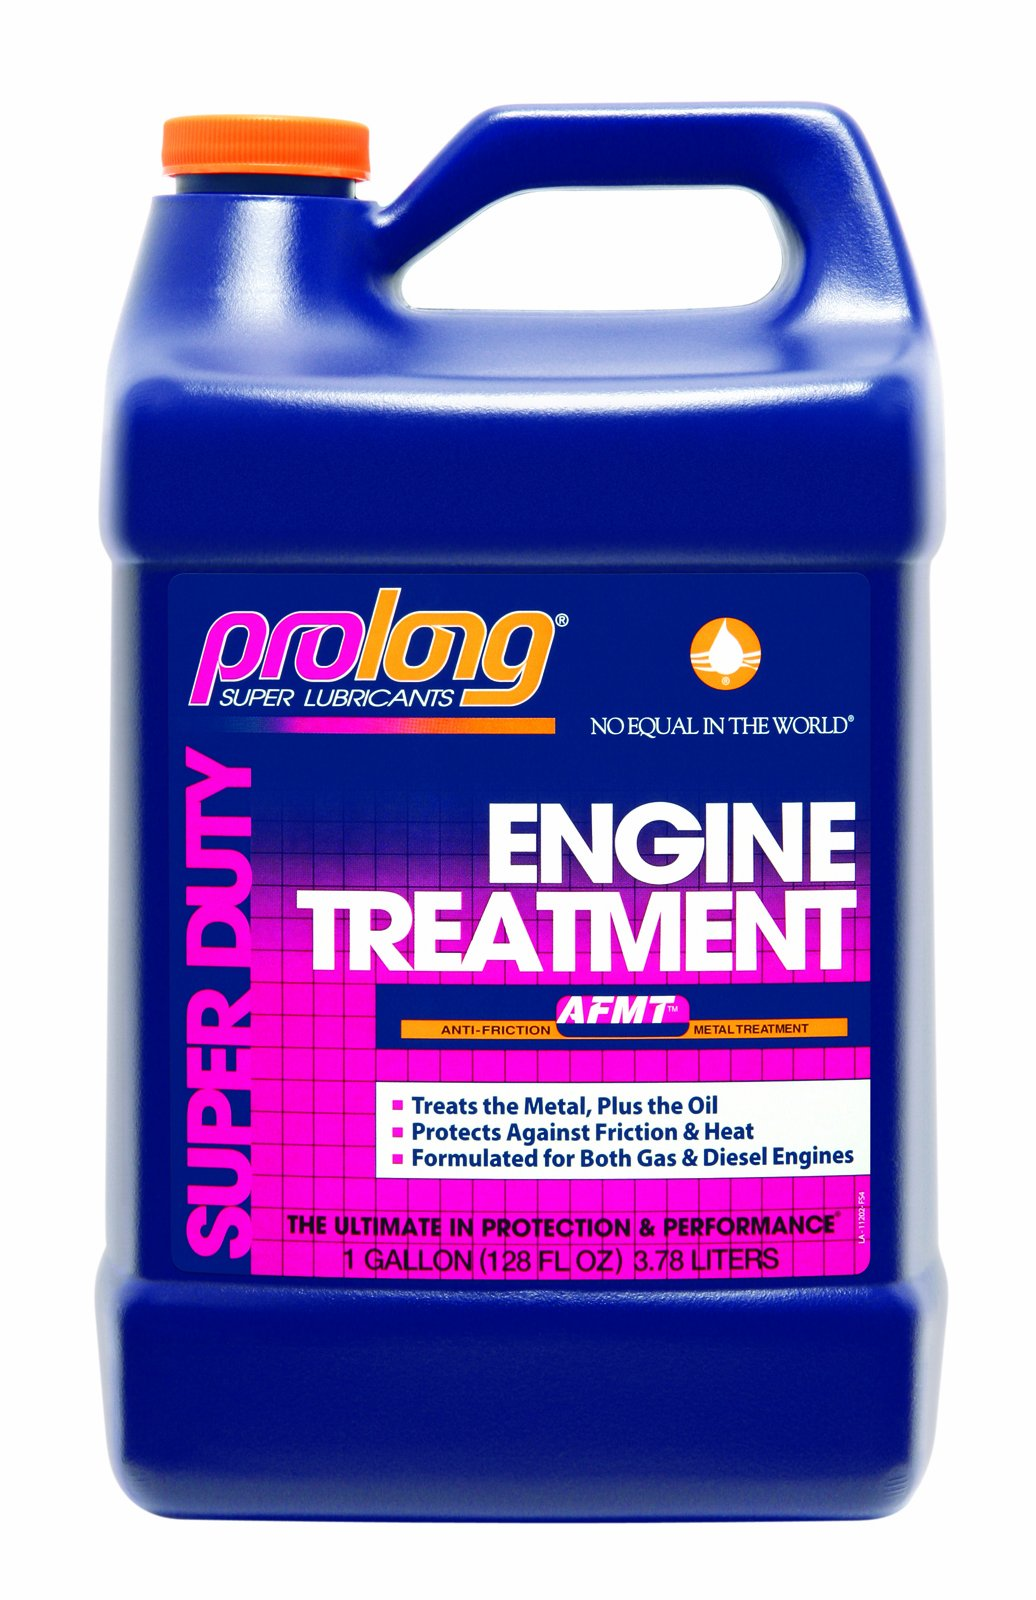 Prolong Super Lubricants PSL11202-2PK Engine Treatment - 1 Gallon, (Pack of 2)